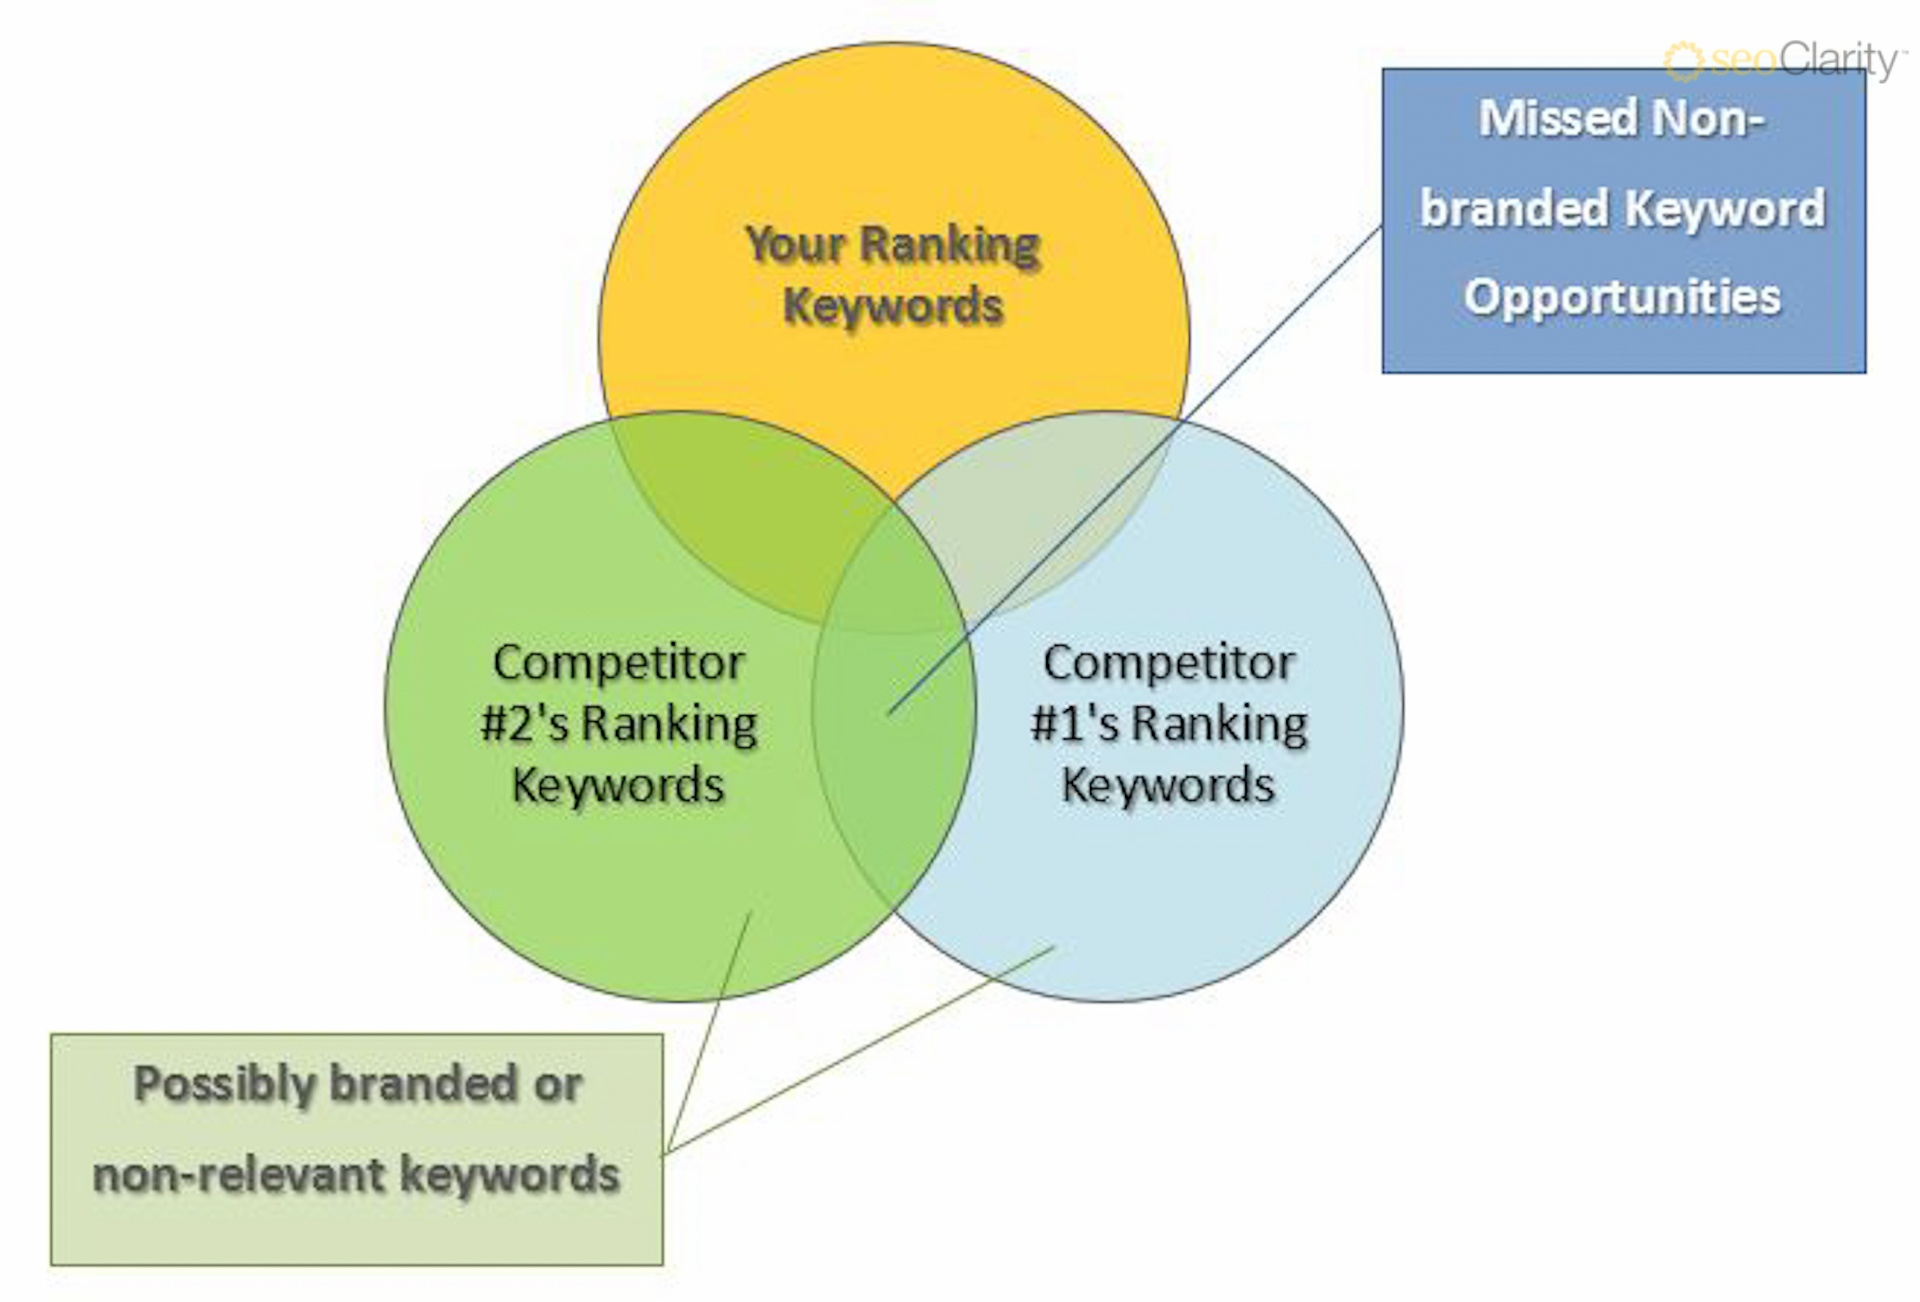 Wisdom of the Crowd, Part 1: Mining the Competitive Keyword Landscape - Featured Image